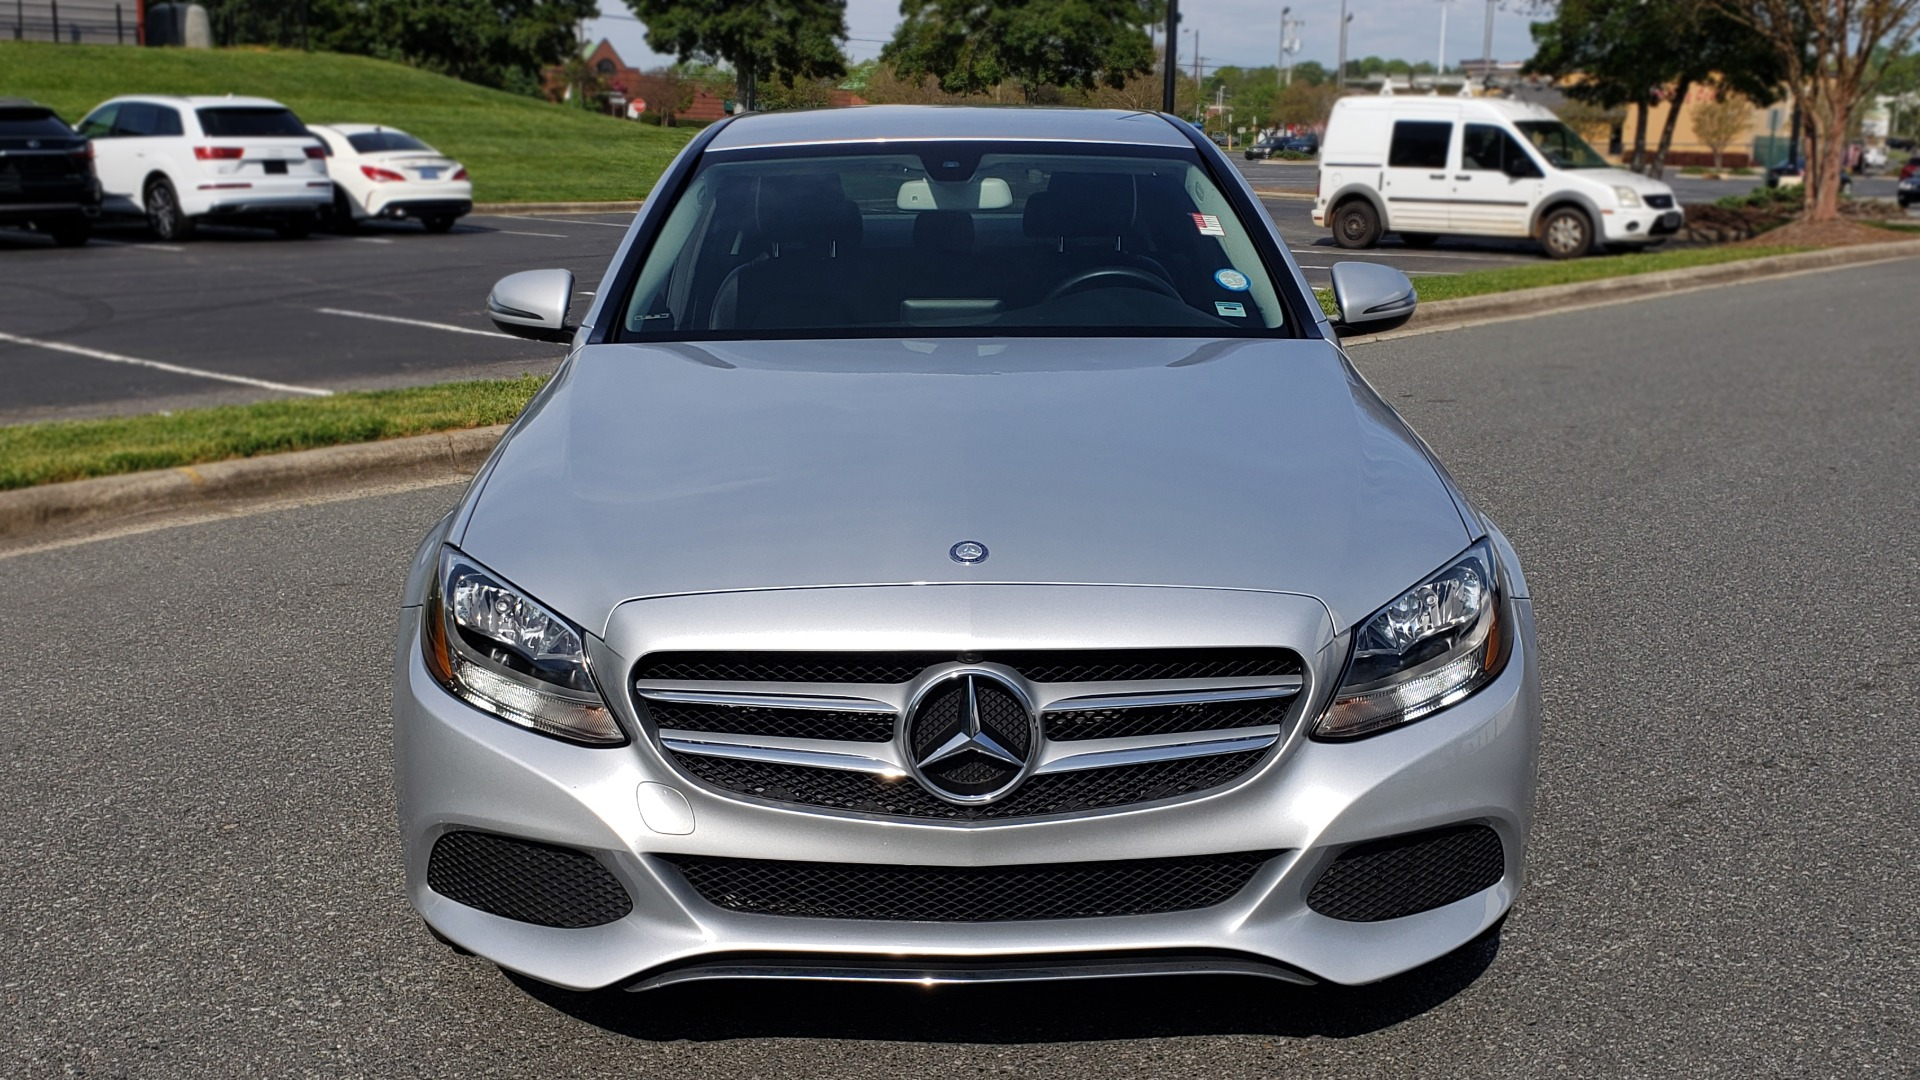 Used 2016 Mercedes-Benz C-CLASS C 300 PREMIUM / NAV / SNRF/ HTD STS / REARVIEW / BSM for sale Sold at Formula Imports in Charlotte NC 28227 23